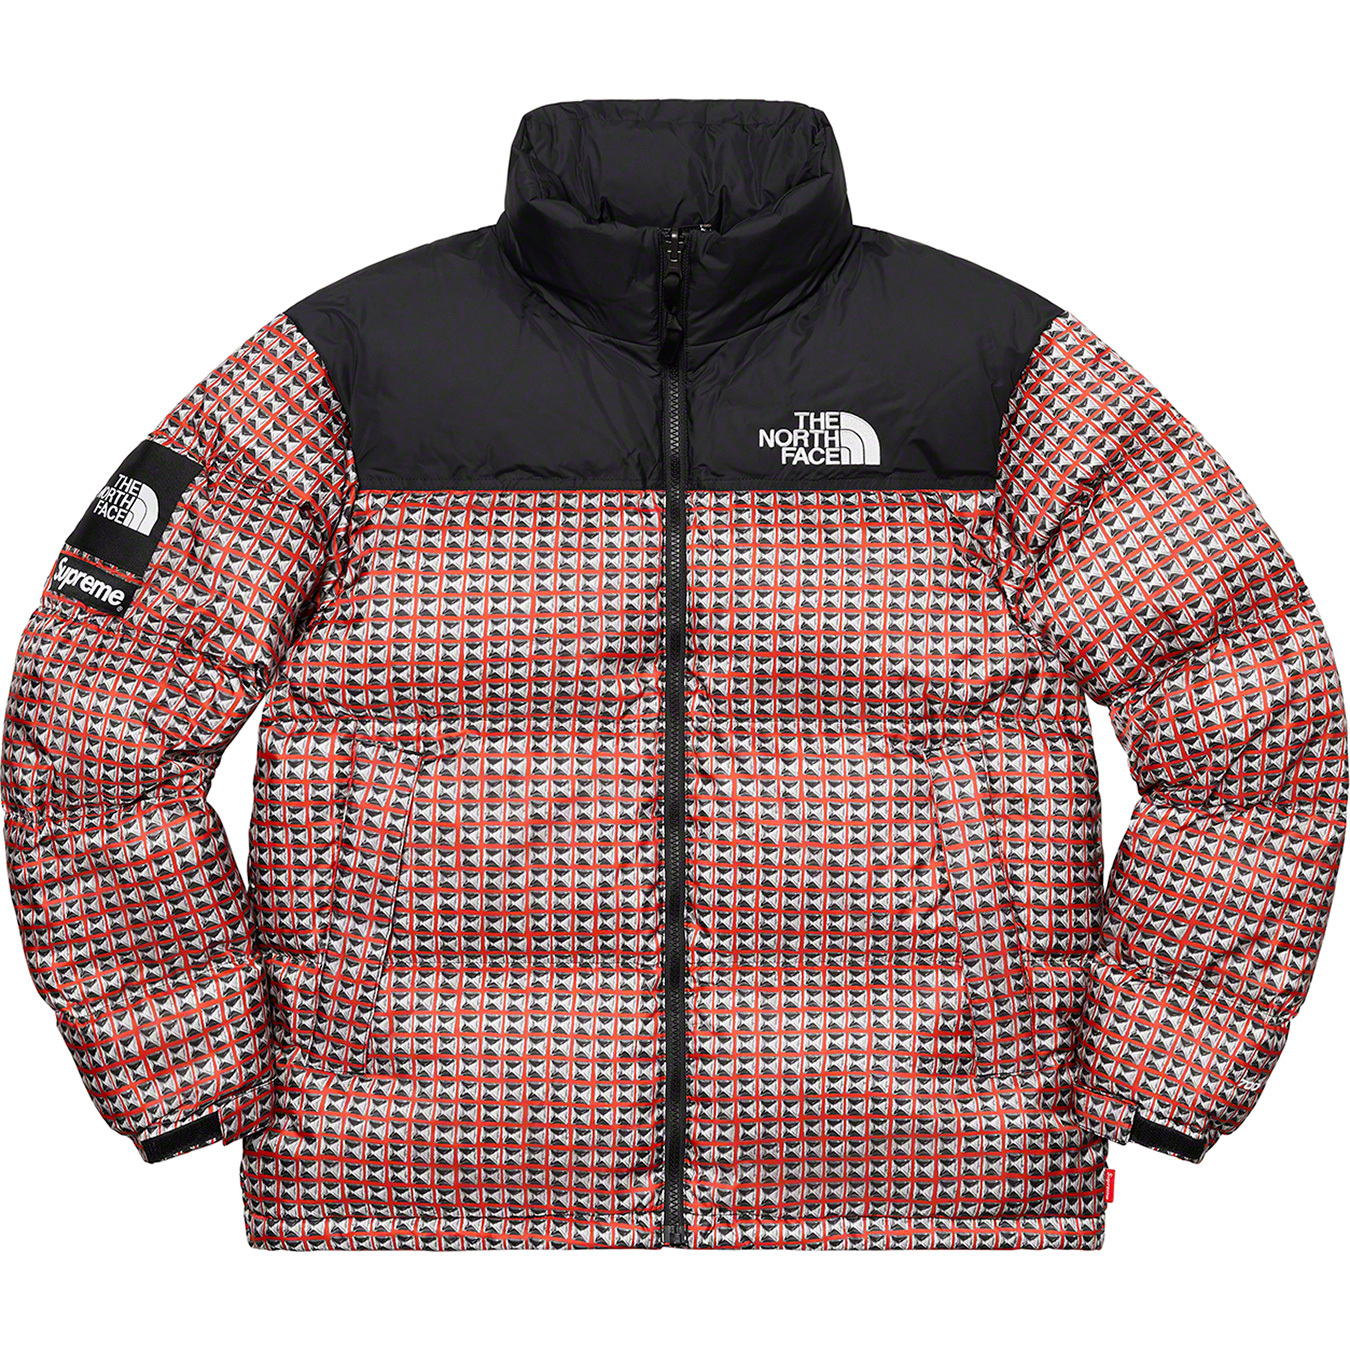 supreme-the-north-face-studded-21ss-collection-release-20210327-week5-nuptse-jacket